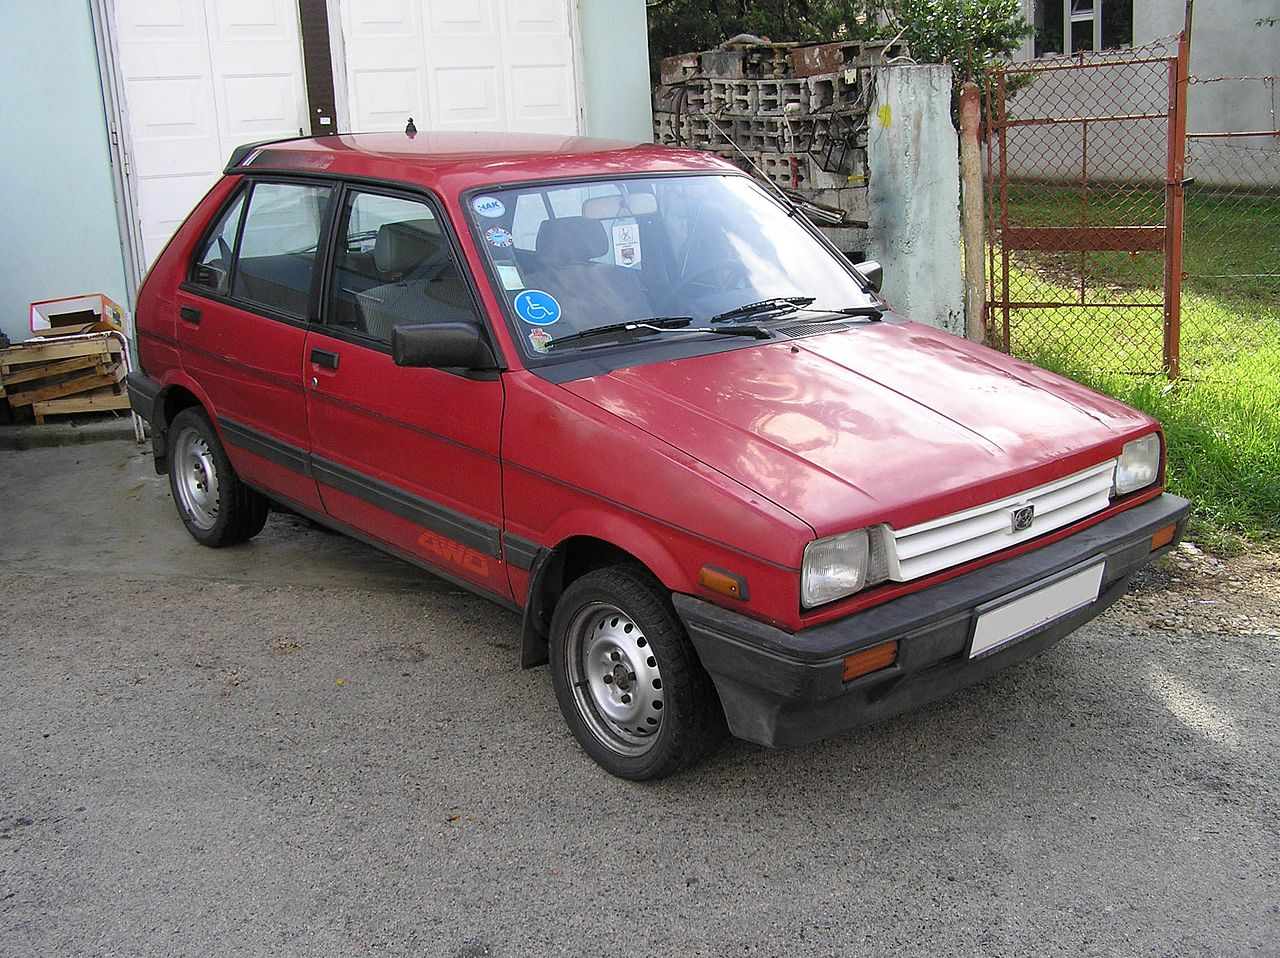 1280px-Subaru_Justy_4WD_first_gen_phase_